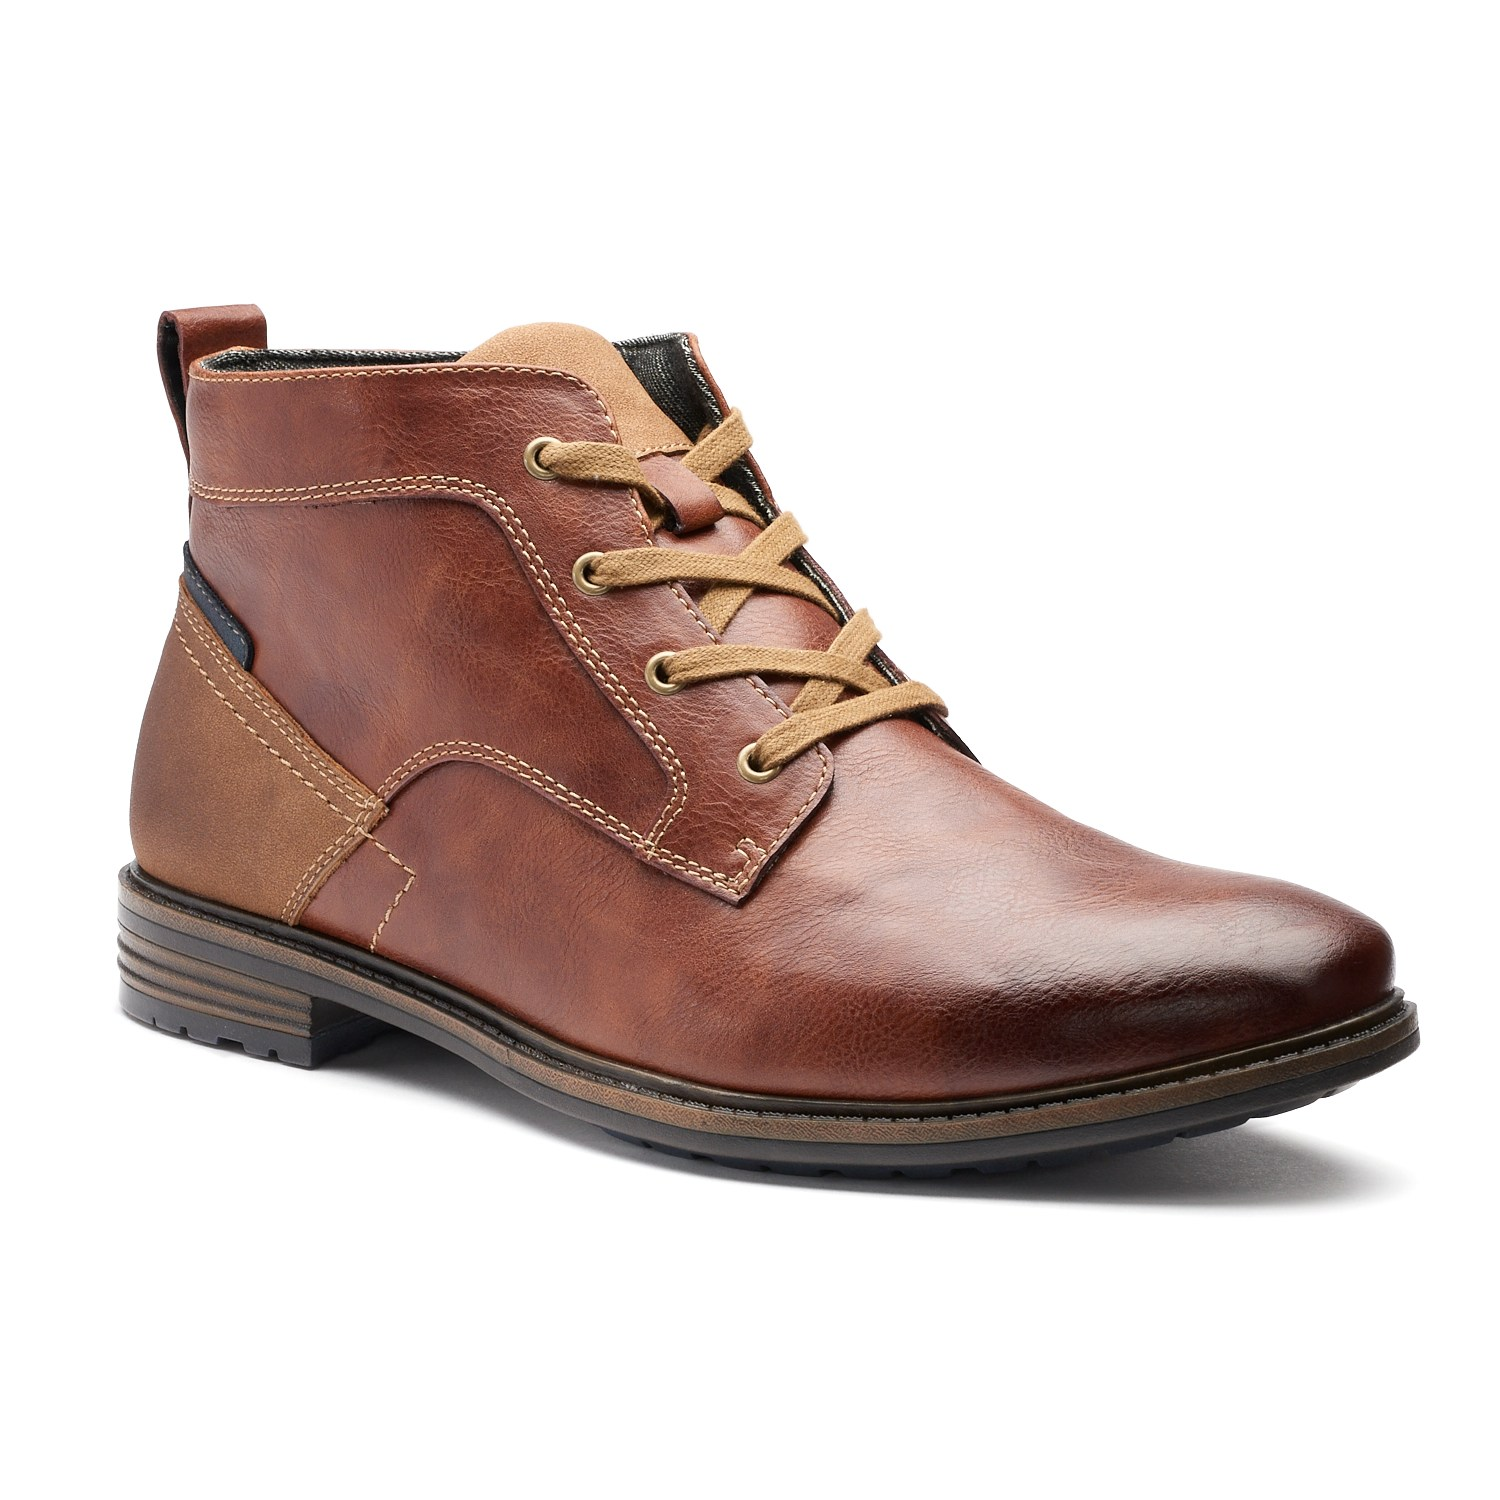 mens dress boots sonoma goods for life™ eason menu0027s ankle boots ucqnejm